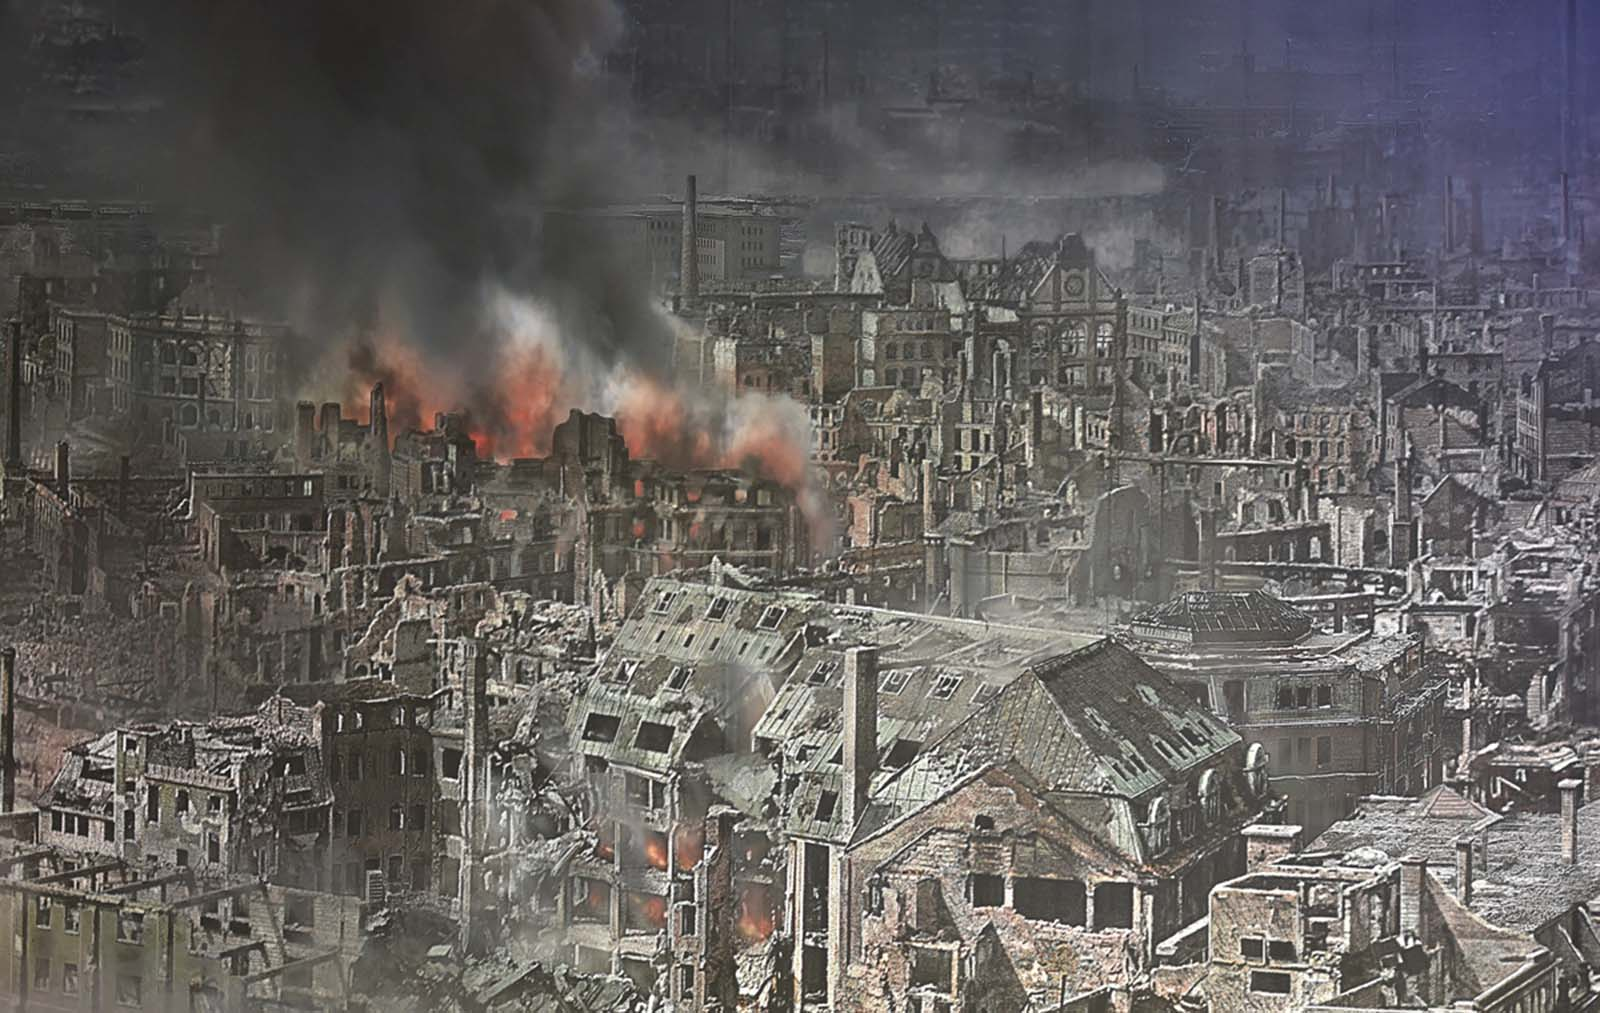 A general view of the a panorama display depicting the city of Dresden in the aftermath of the 1945 Allied firebombing.